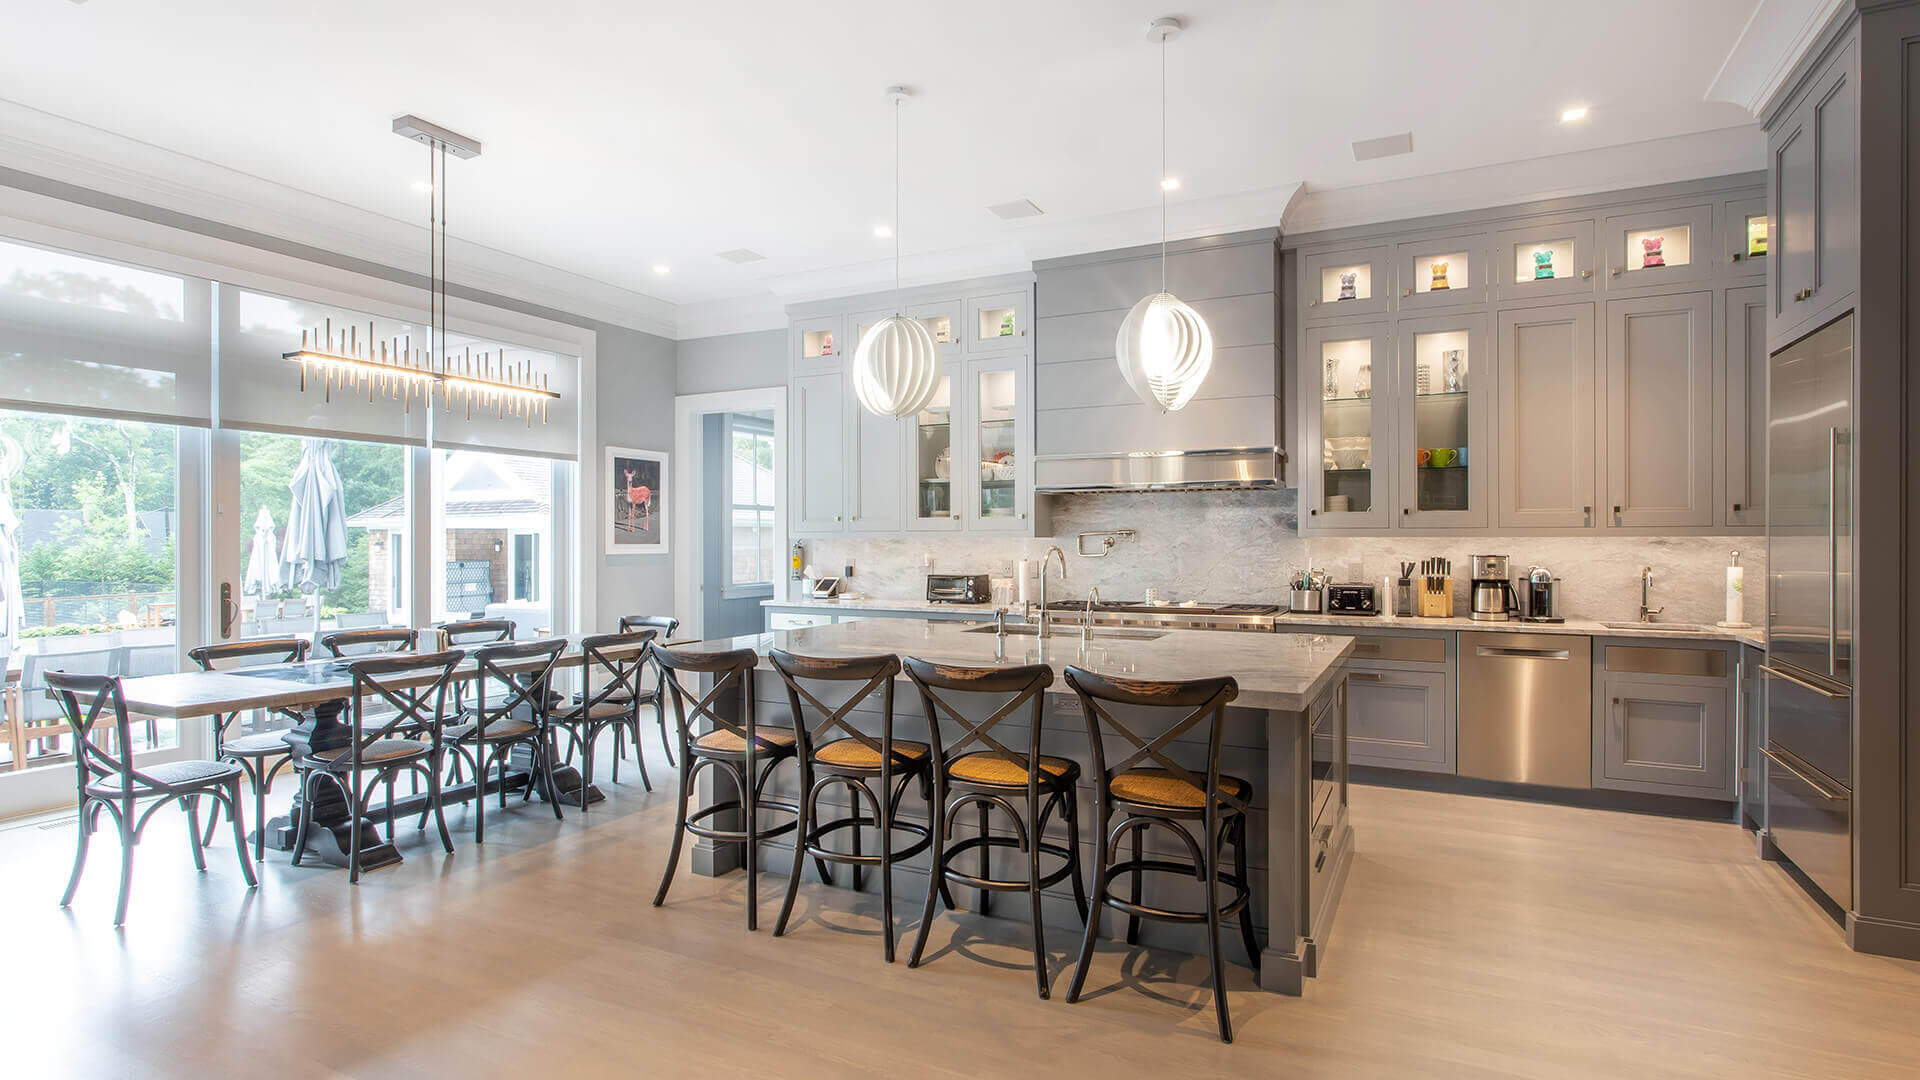 signature hand-painted gray cabinets, elevated kitchen design,& sophisticated custom finishes